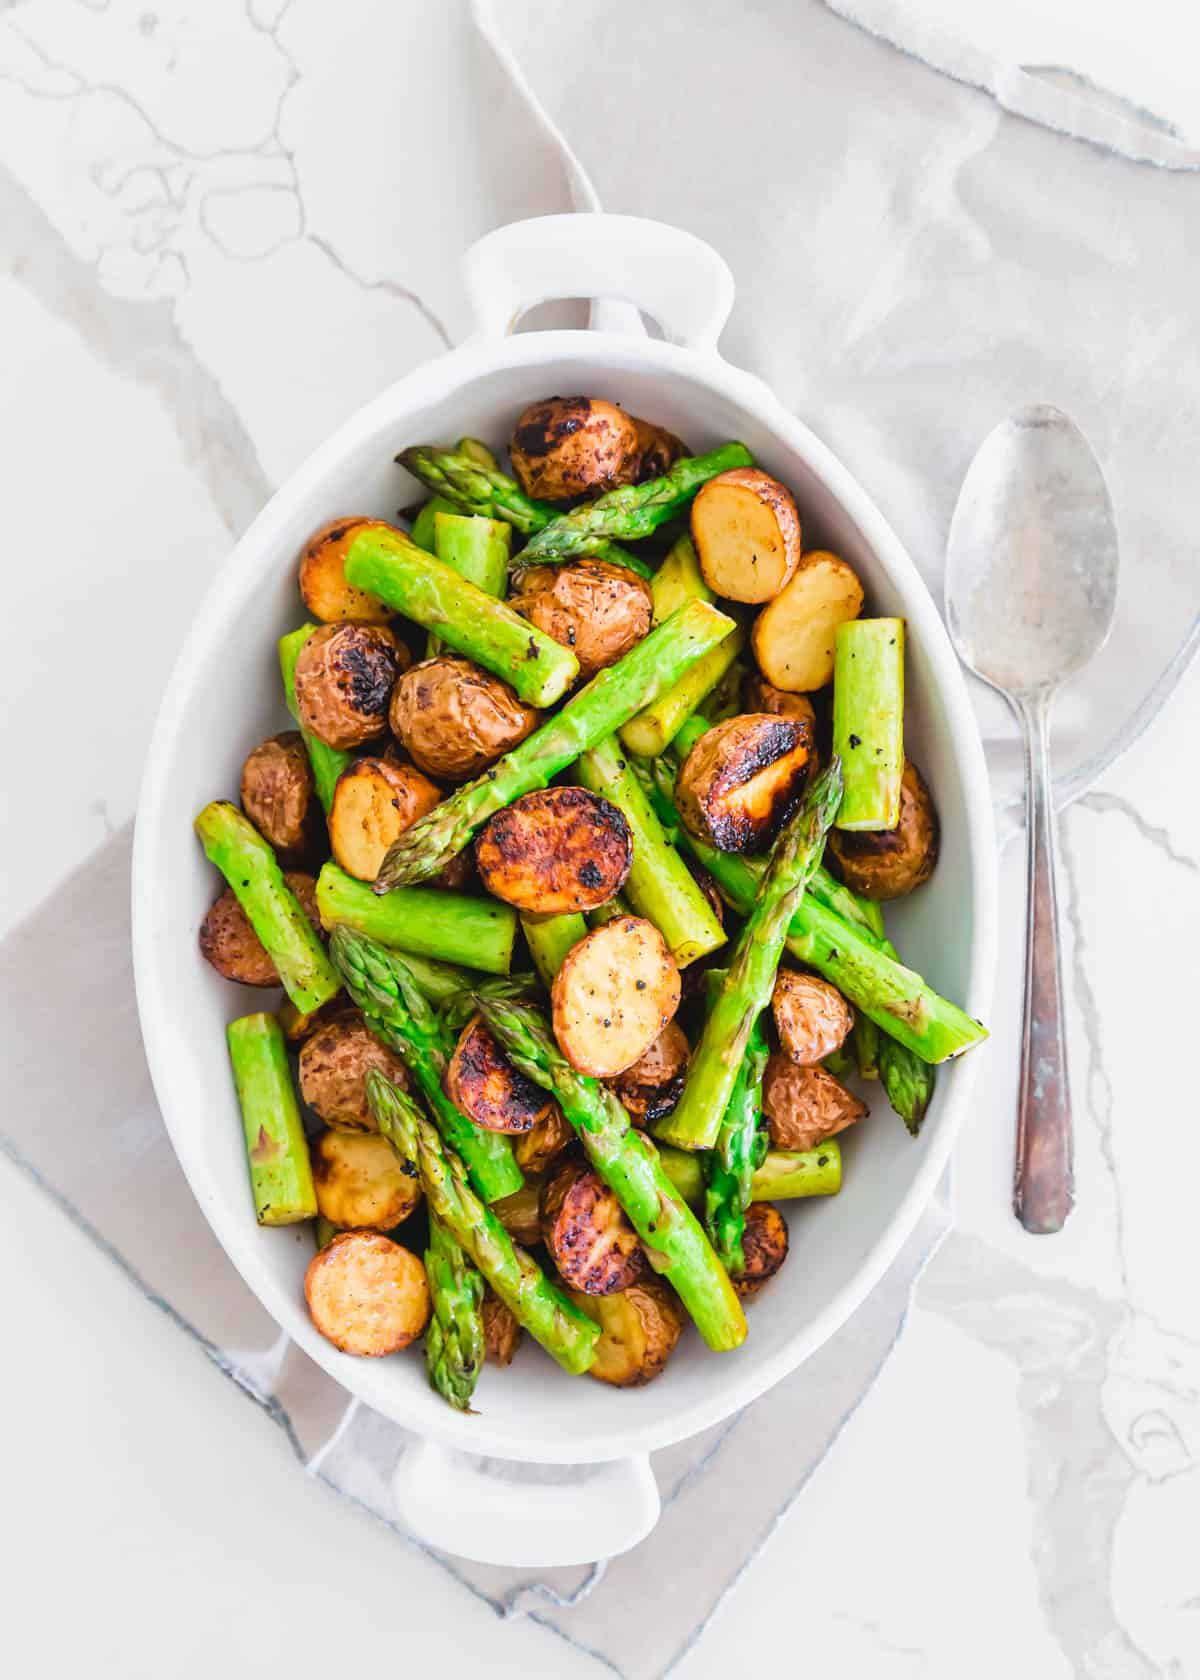 This easy side dish of oven roasted potatoes and asparagus is made all on one baking sheet with garlic balsamic seasoning.